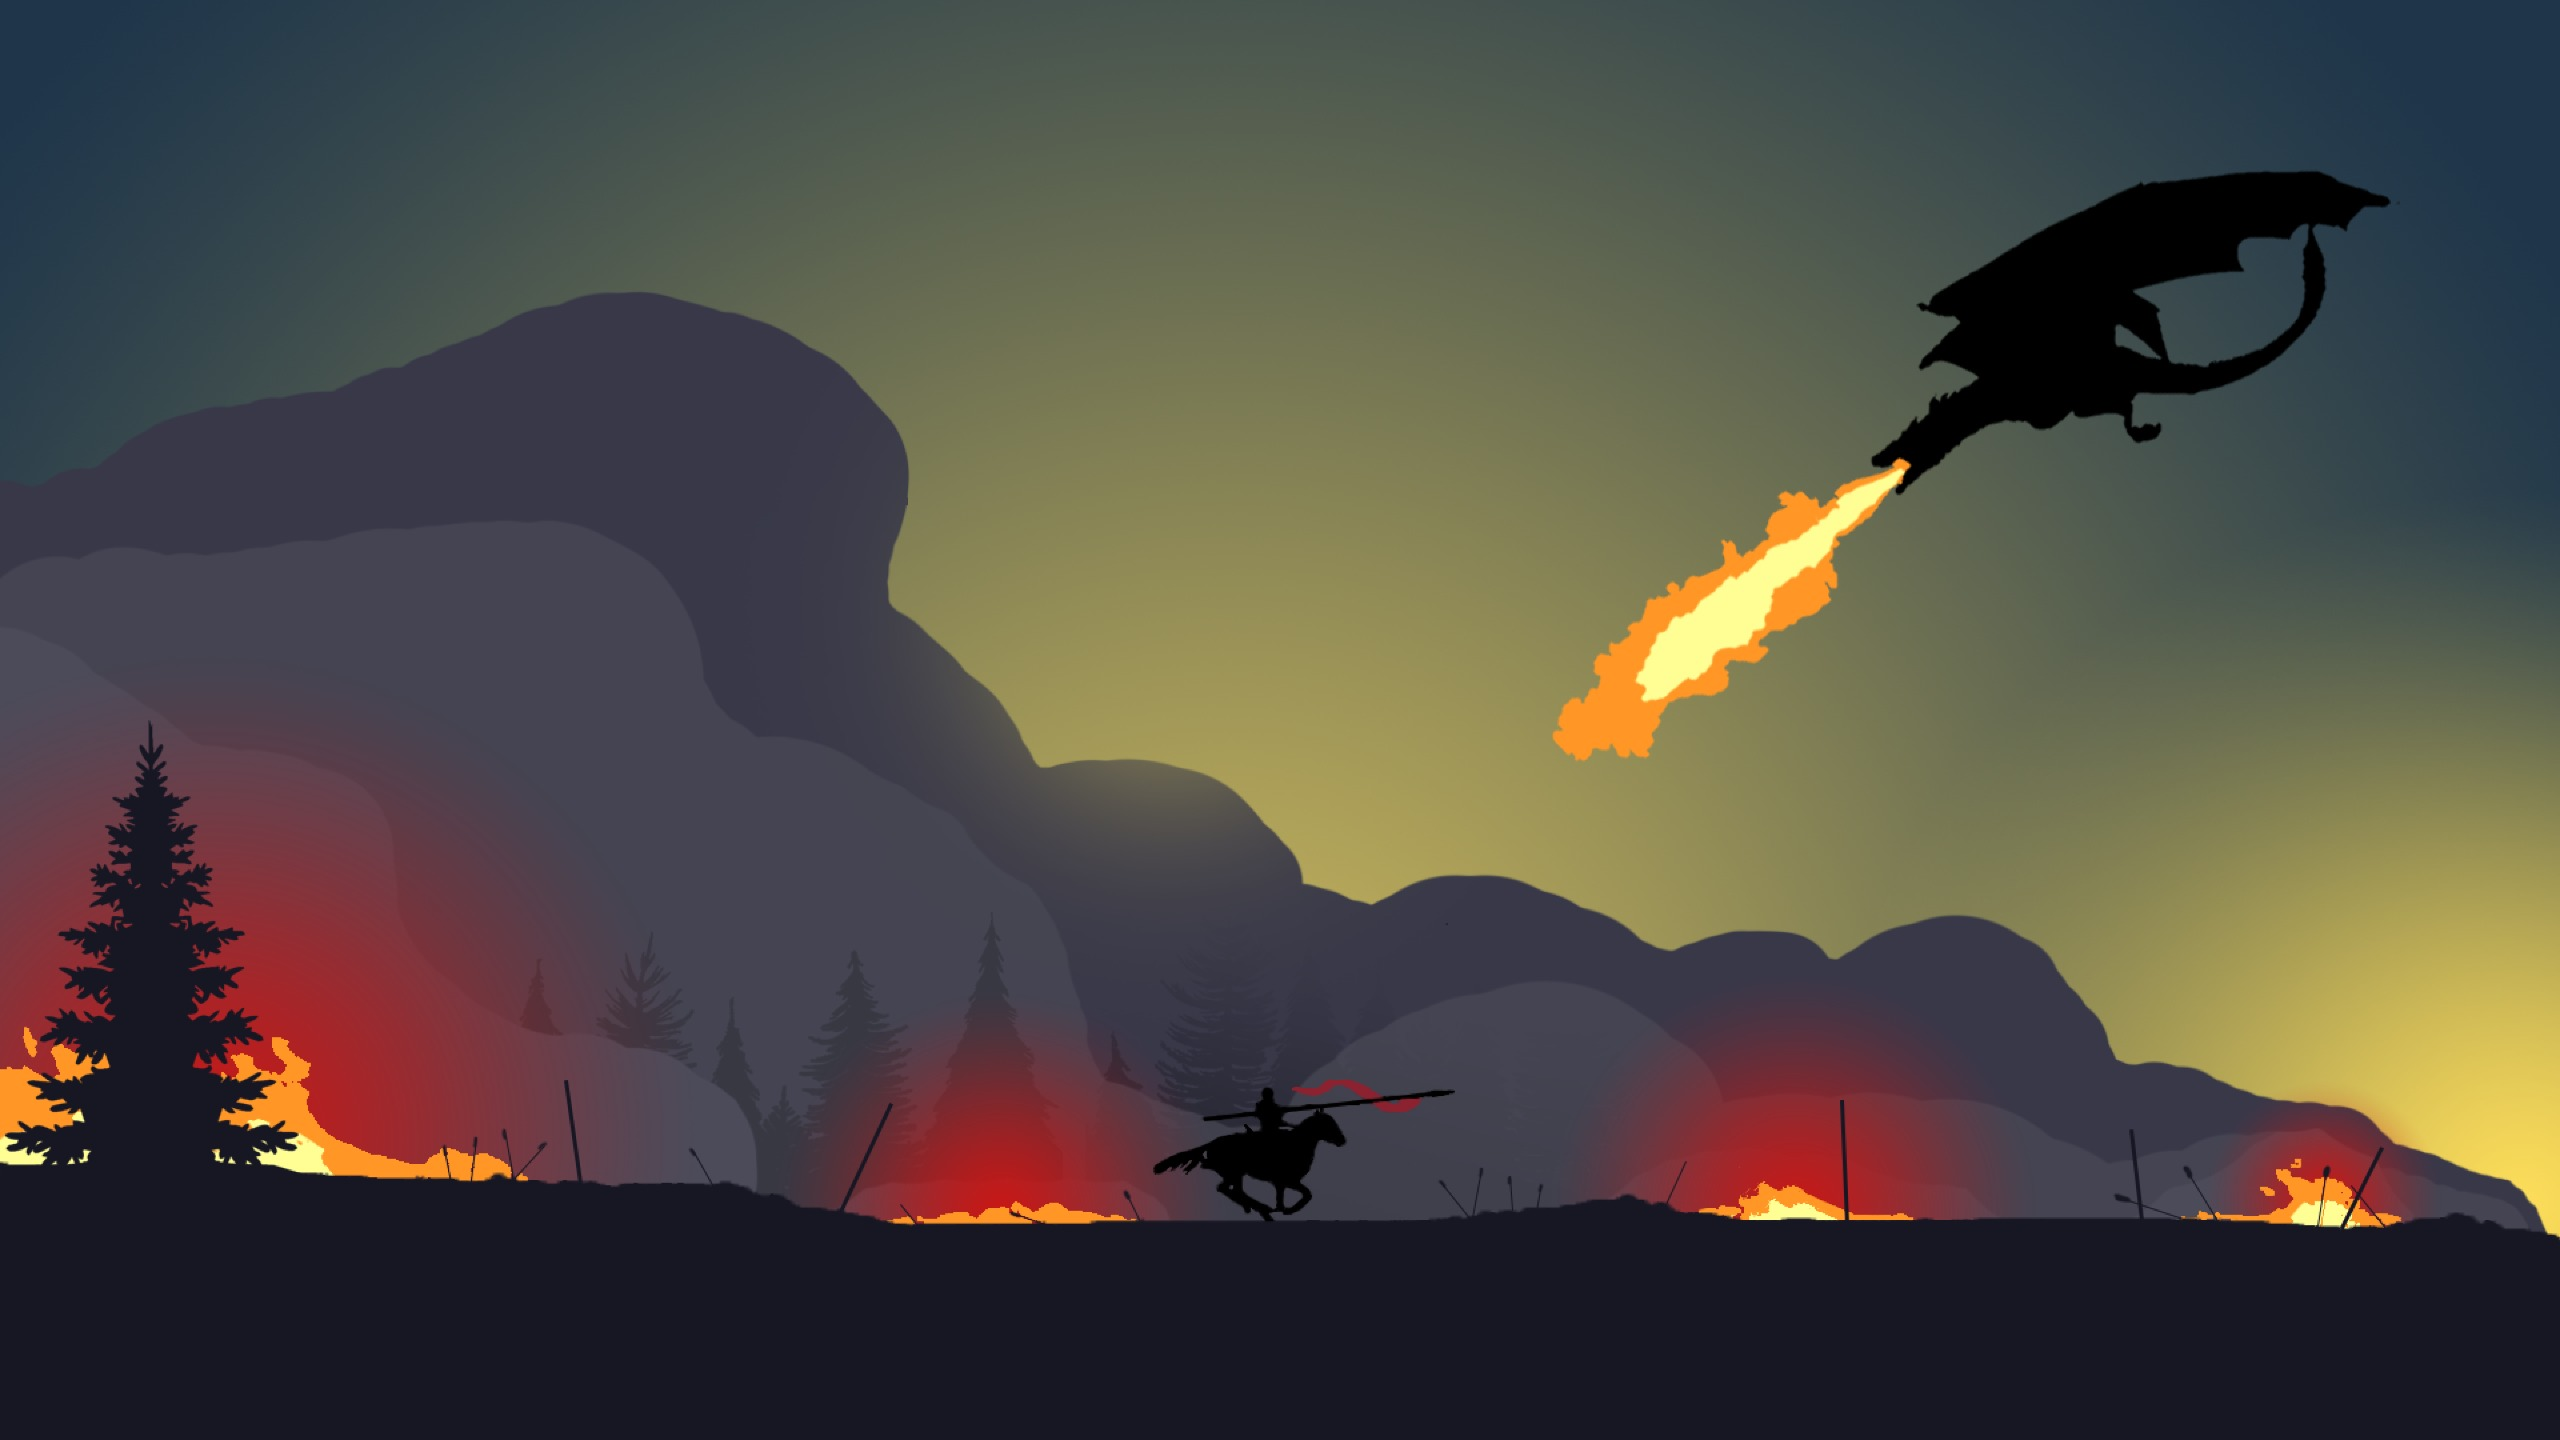 2560x1440 Game Of Thrones Season 7 The Spoils Of War Minimal Art 1440p Resolution Wallpaper Hd Movies 4k Wallpapers Images Photos And Background